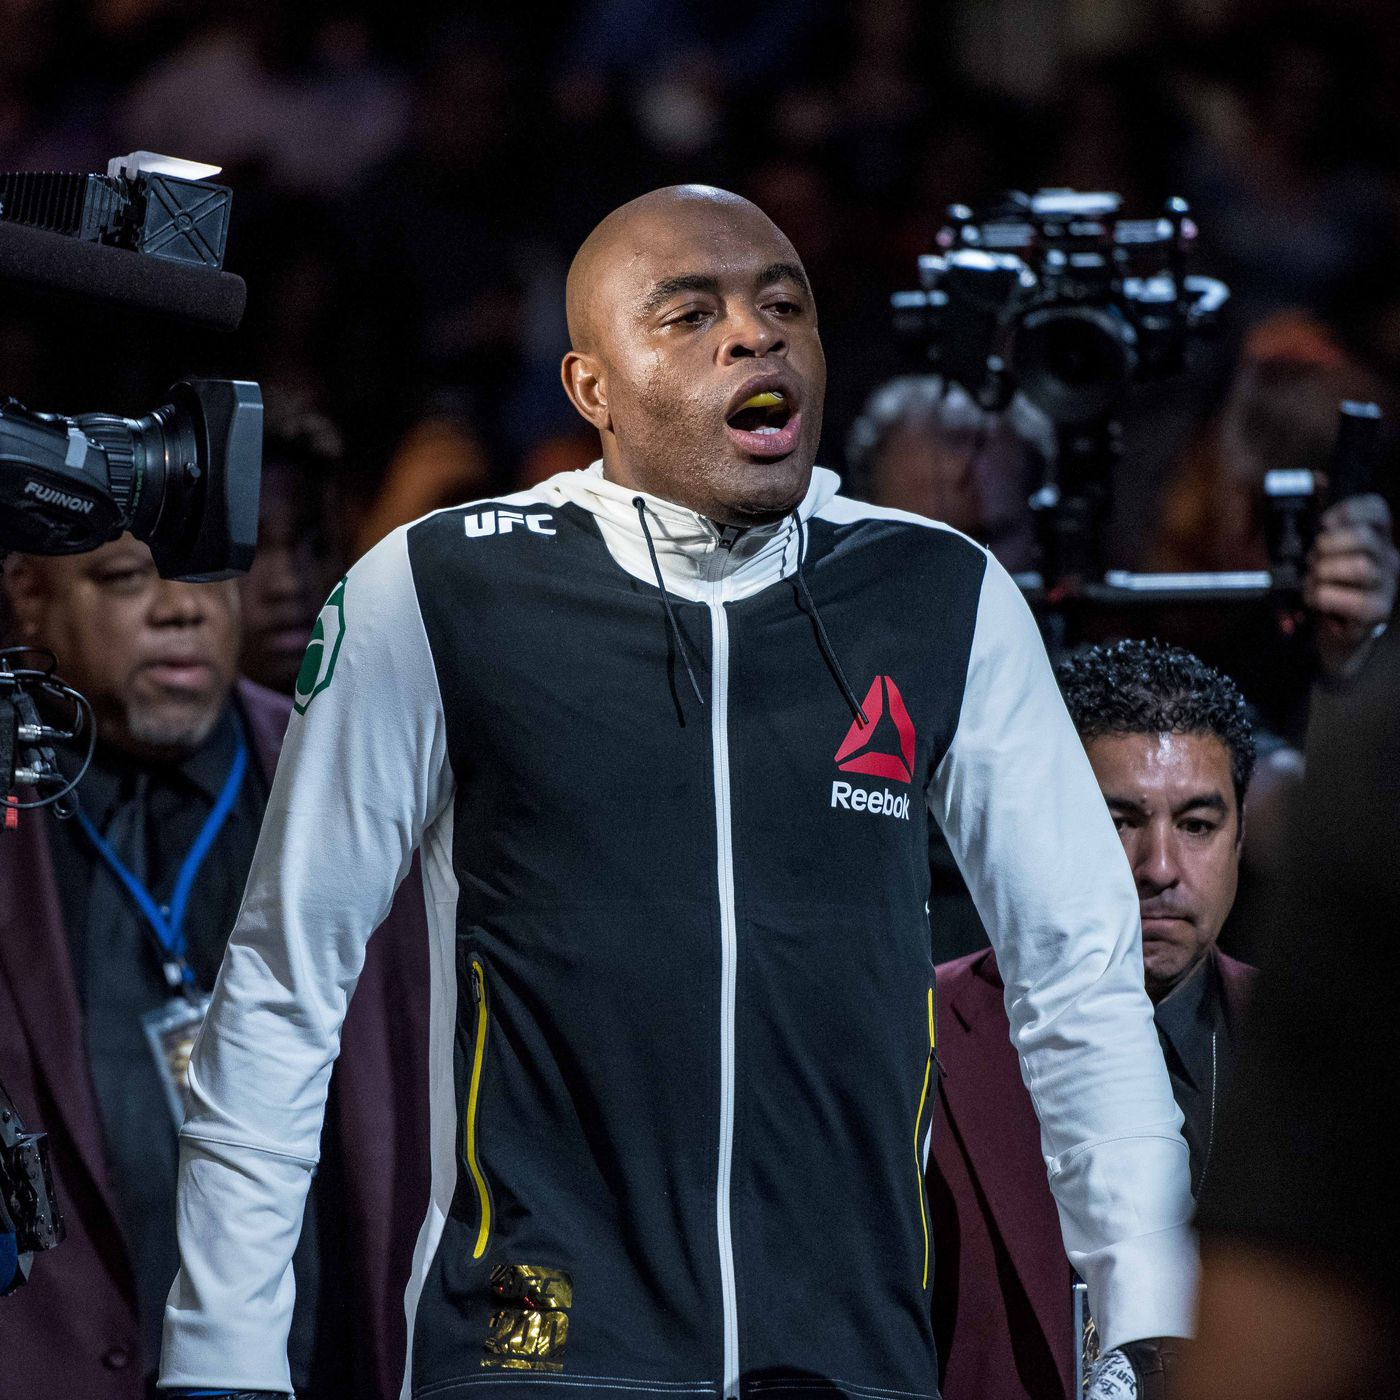 Anderson Silva Changes Walkout Song For Ufc 208 Bout With